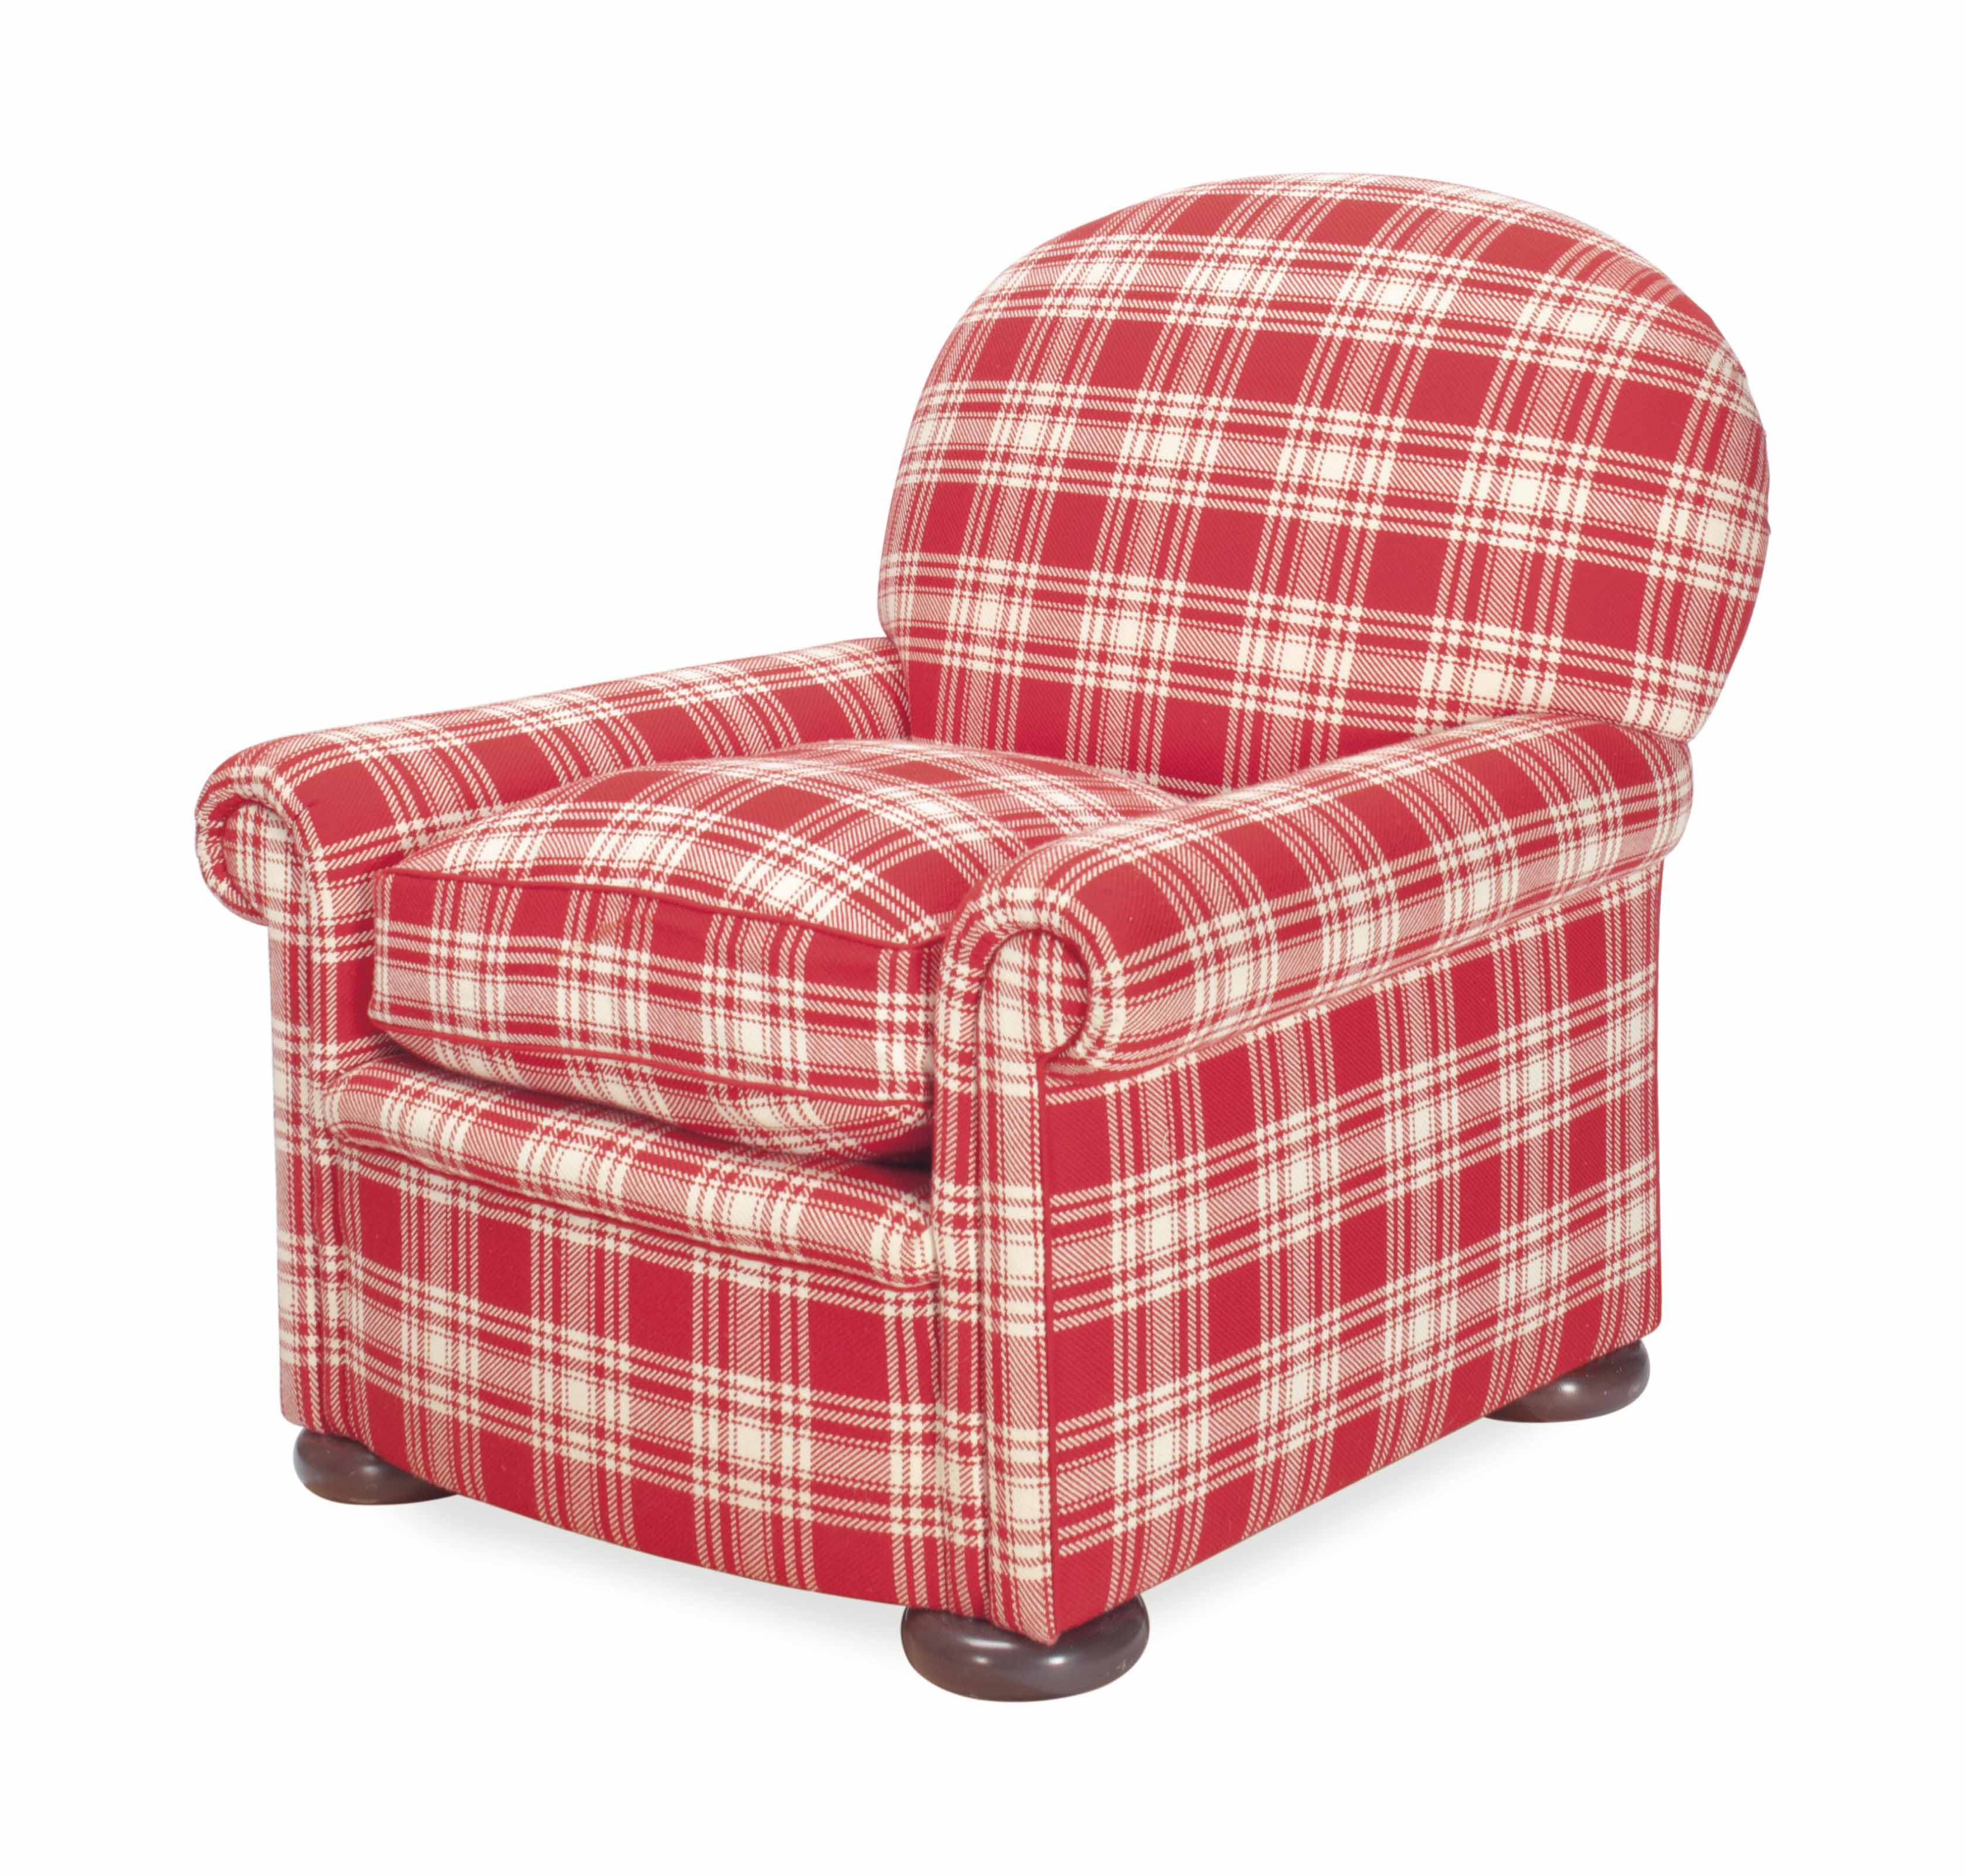 A RED AND WHITE PLAID UPHOLSTE